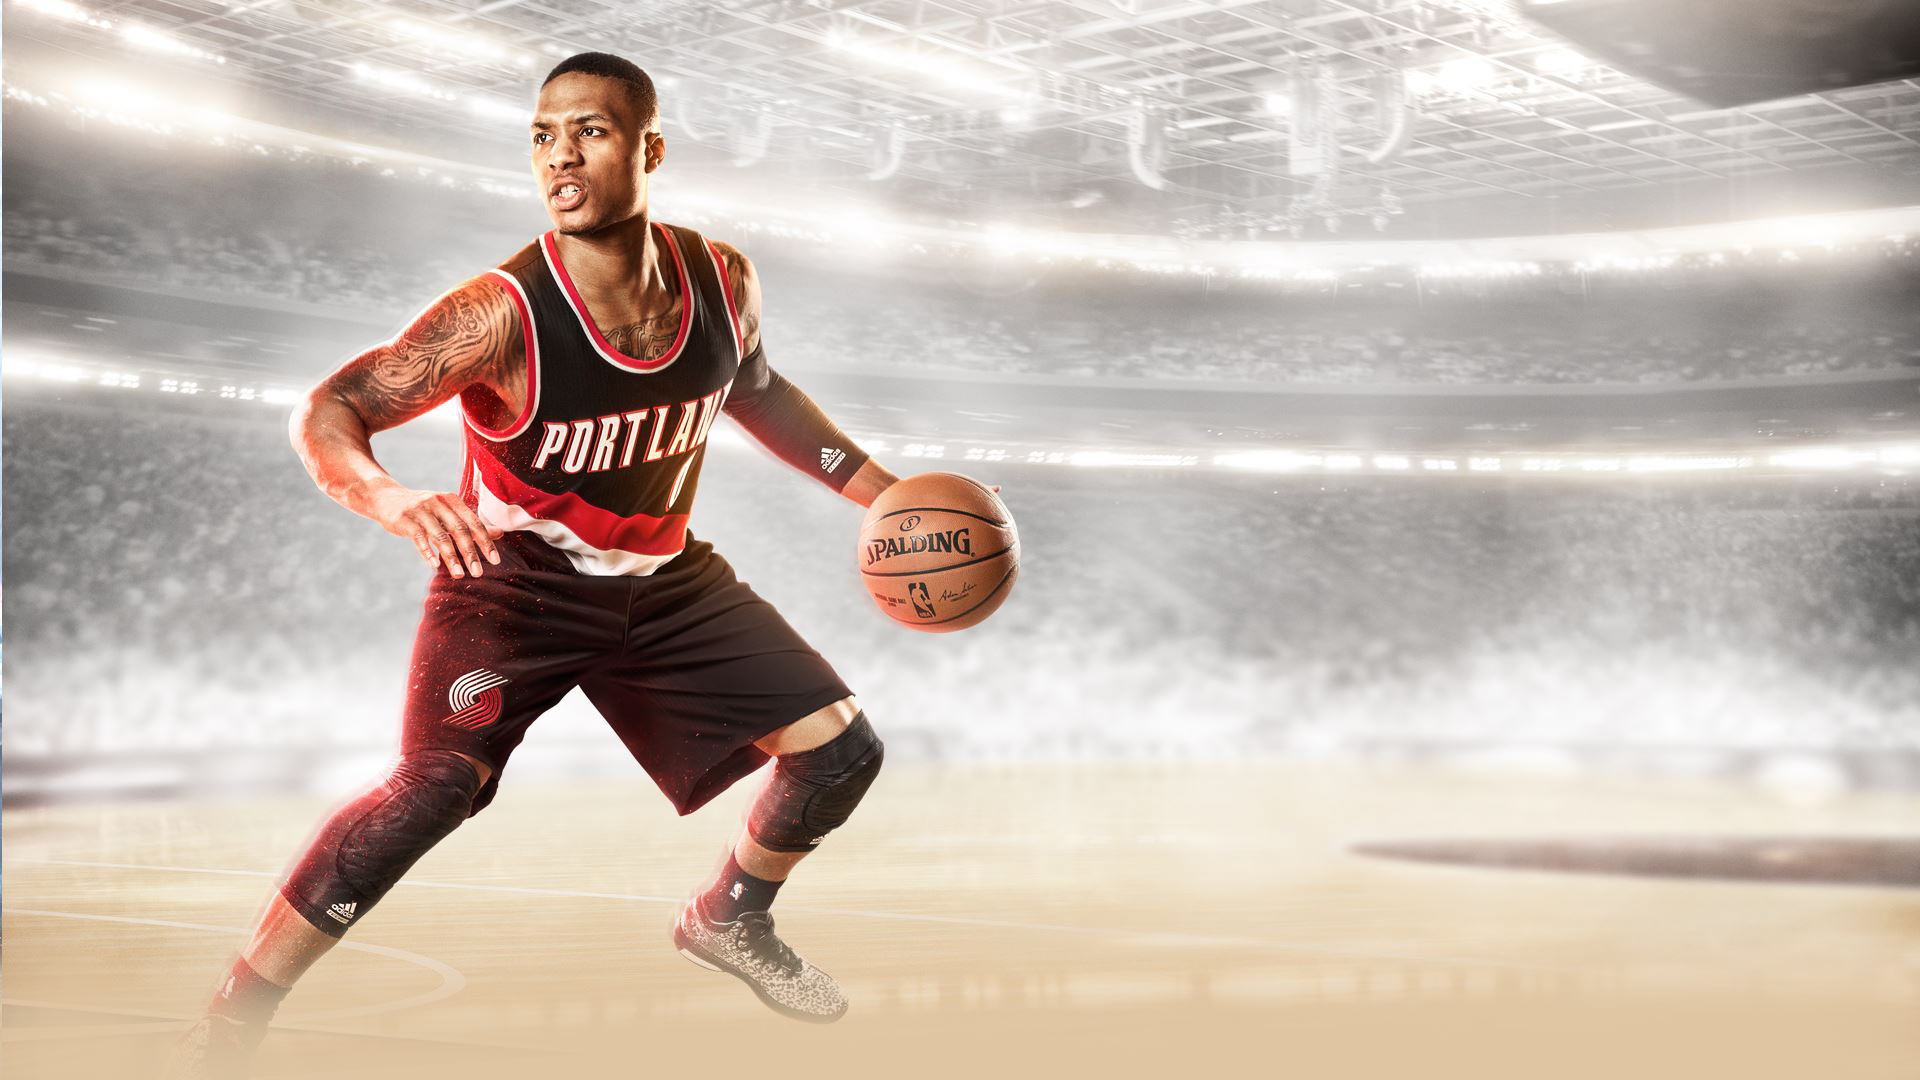 Cheap-NBA-Live-Coins-and-Sale-Madden-Mobile-Coins-ON-https-www-OnlineGameShop-com-you-have-ff-wallpaper-wp3604001